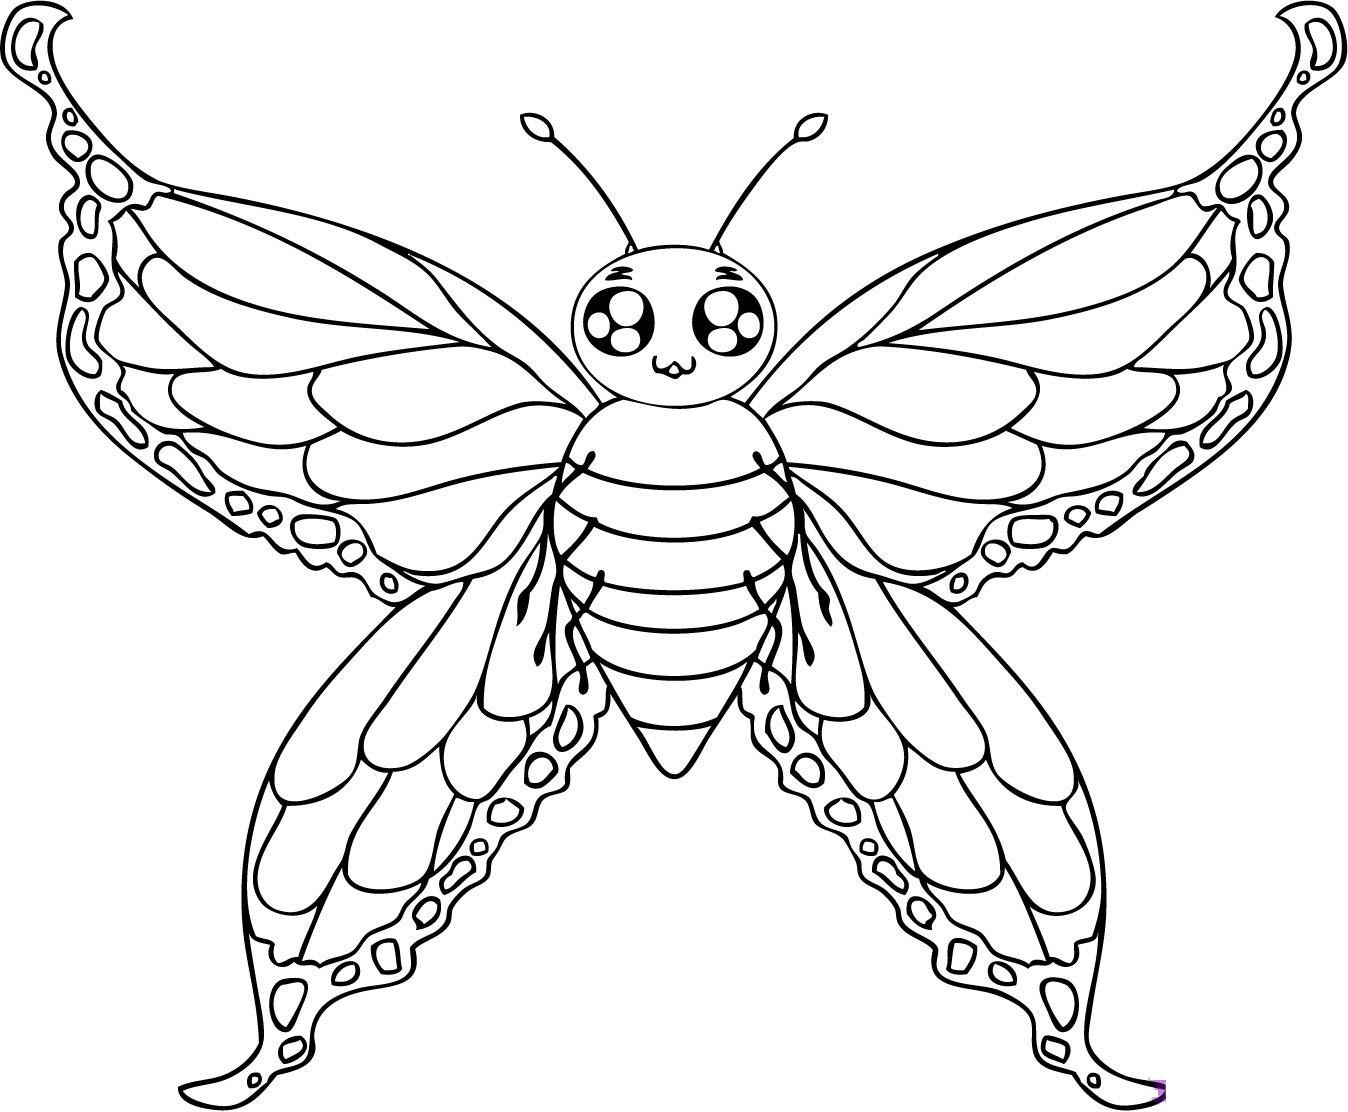 1348x1112 Free Printable Butterfly Coloring Pages For Kids Printable